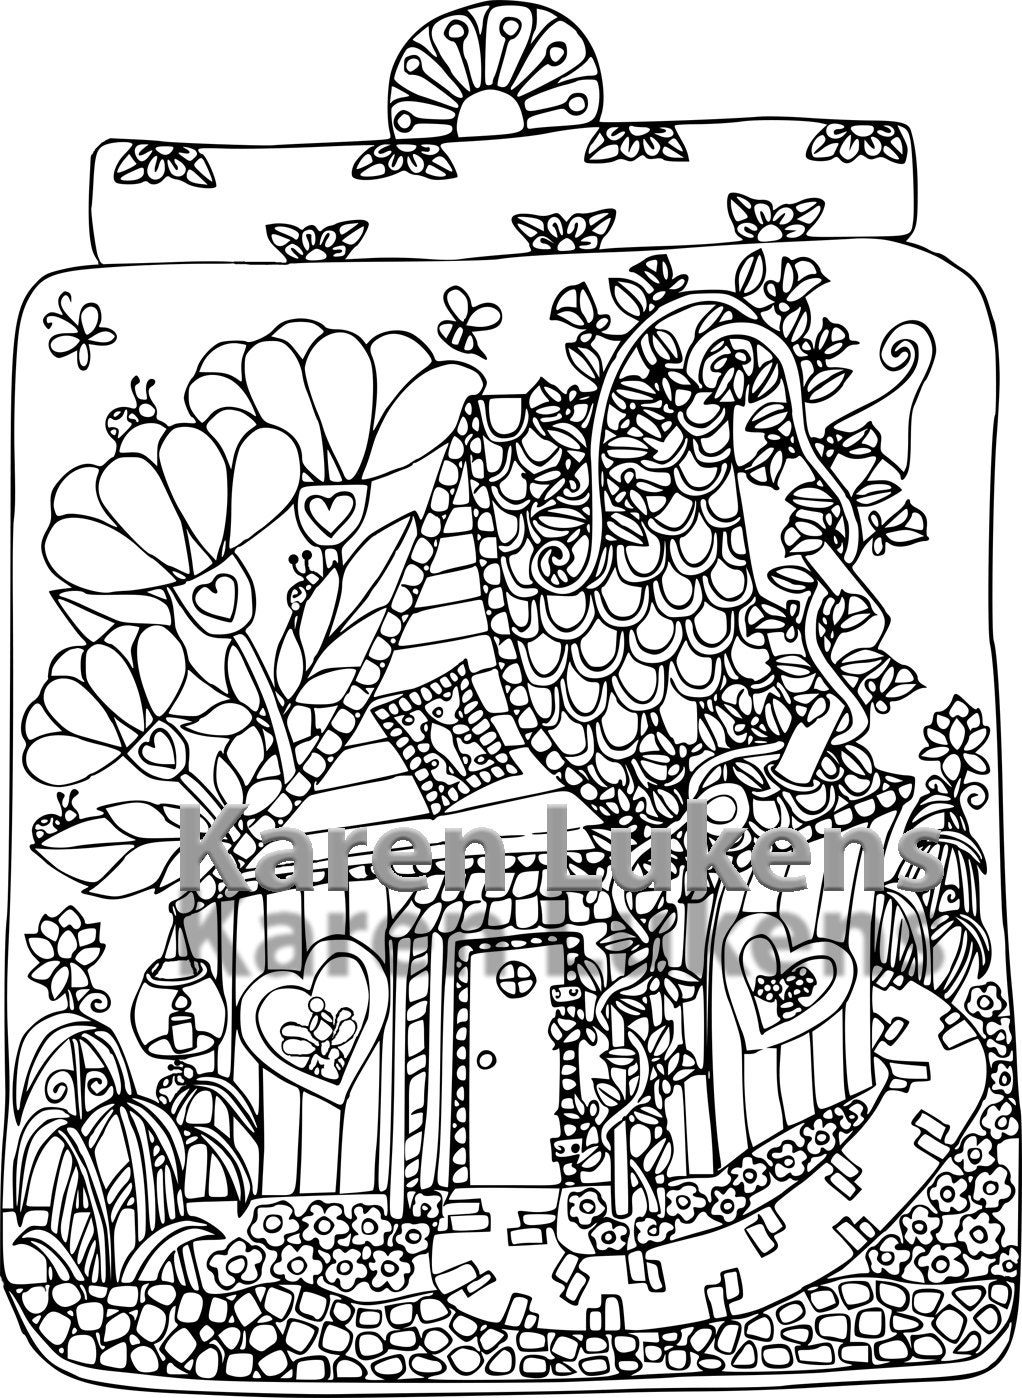 Fairy House 3 1 Adult Coloring Book Page Printable Instant